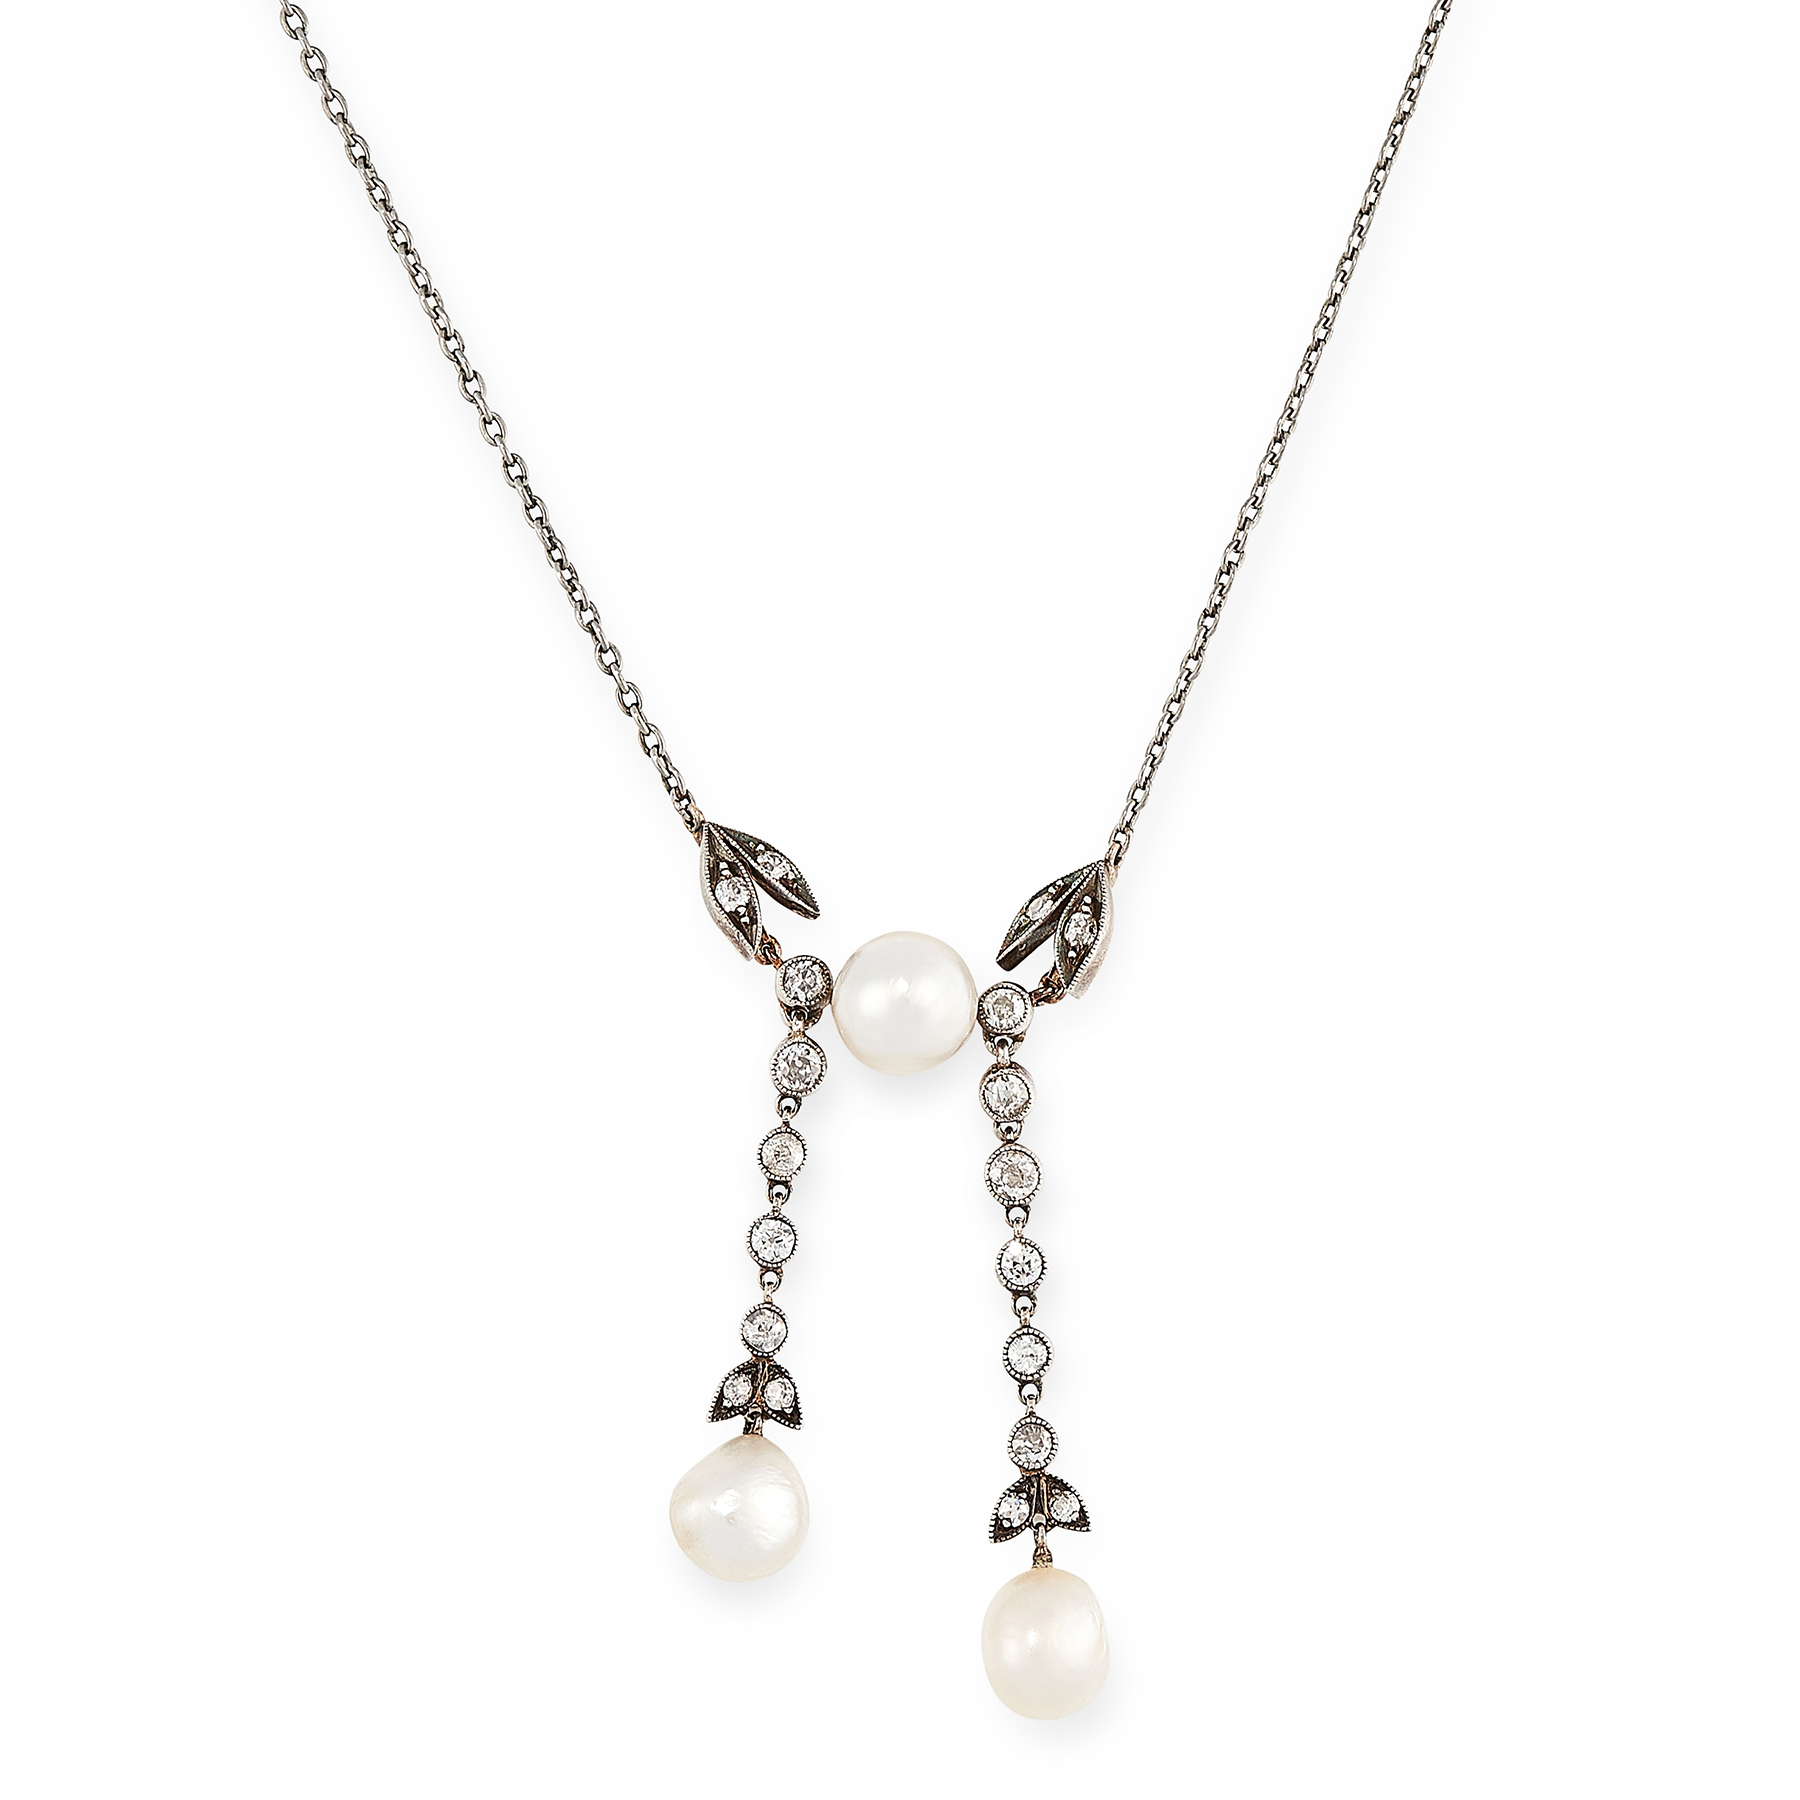 AN ANTIQUE NATURAL PEARL AND DIAMOND LAVALIER NECKLACE in yellow gold and silver, set with round cut